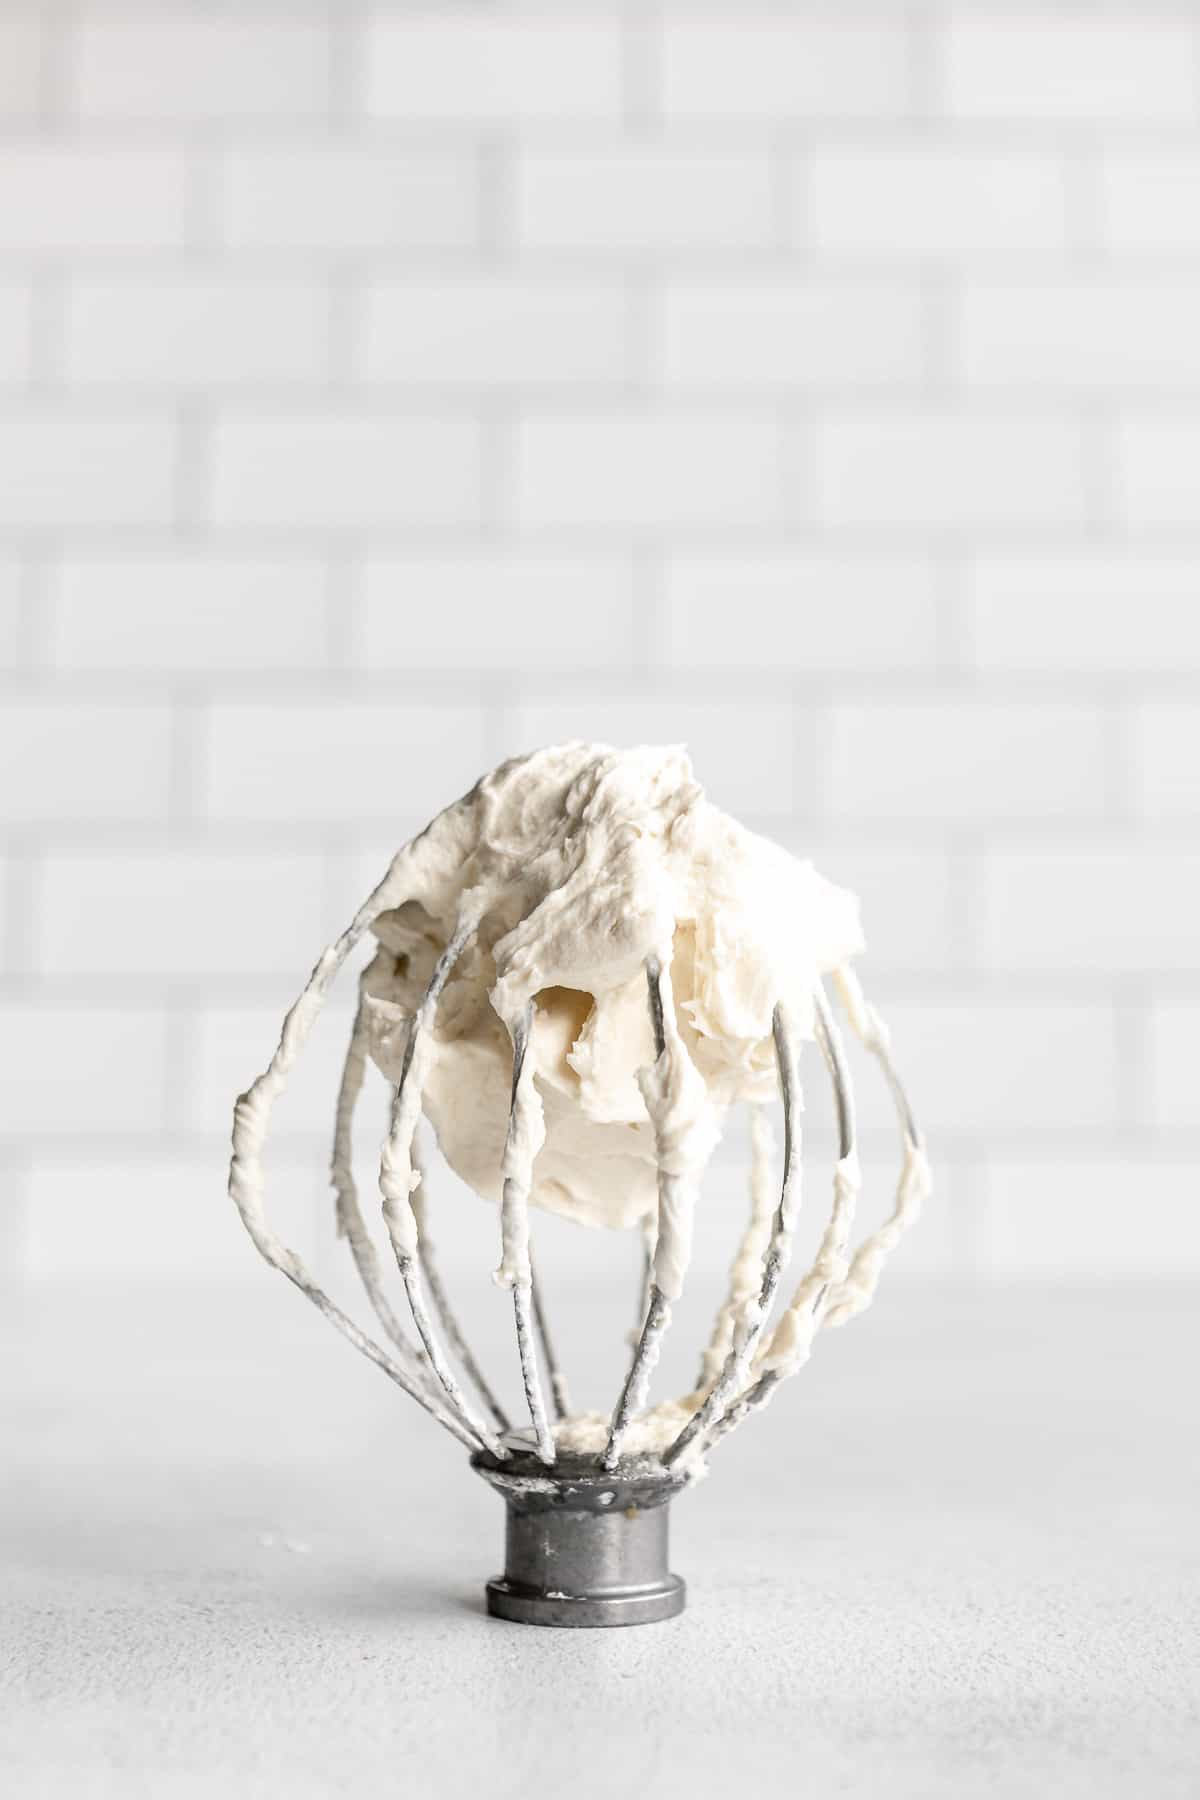 whisk with the frosting on top